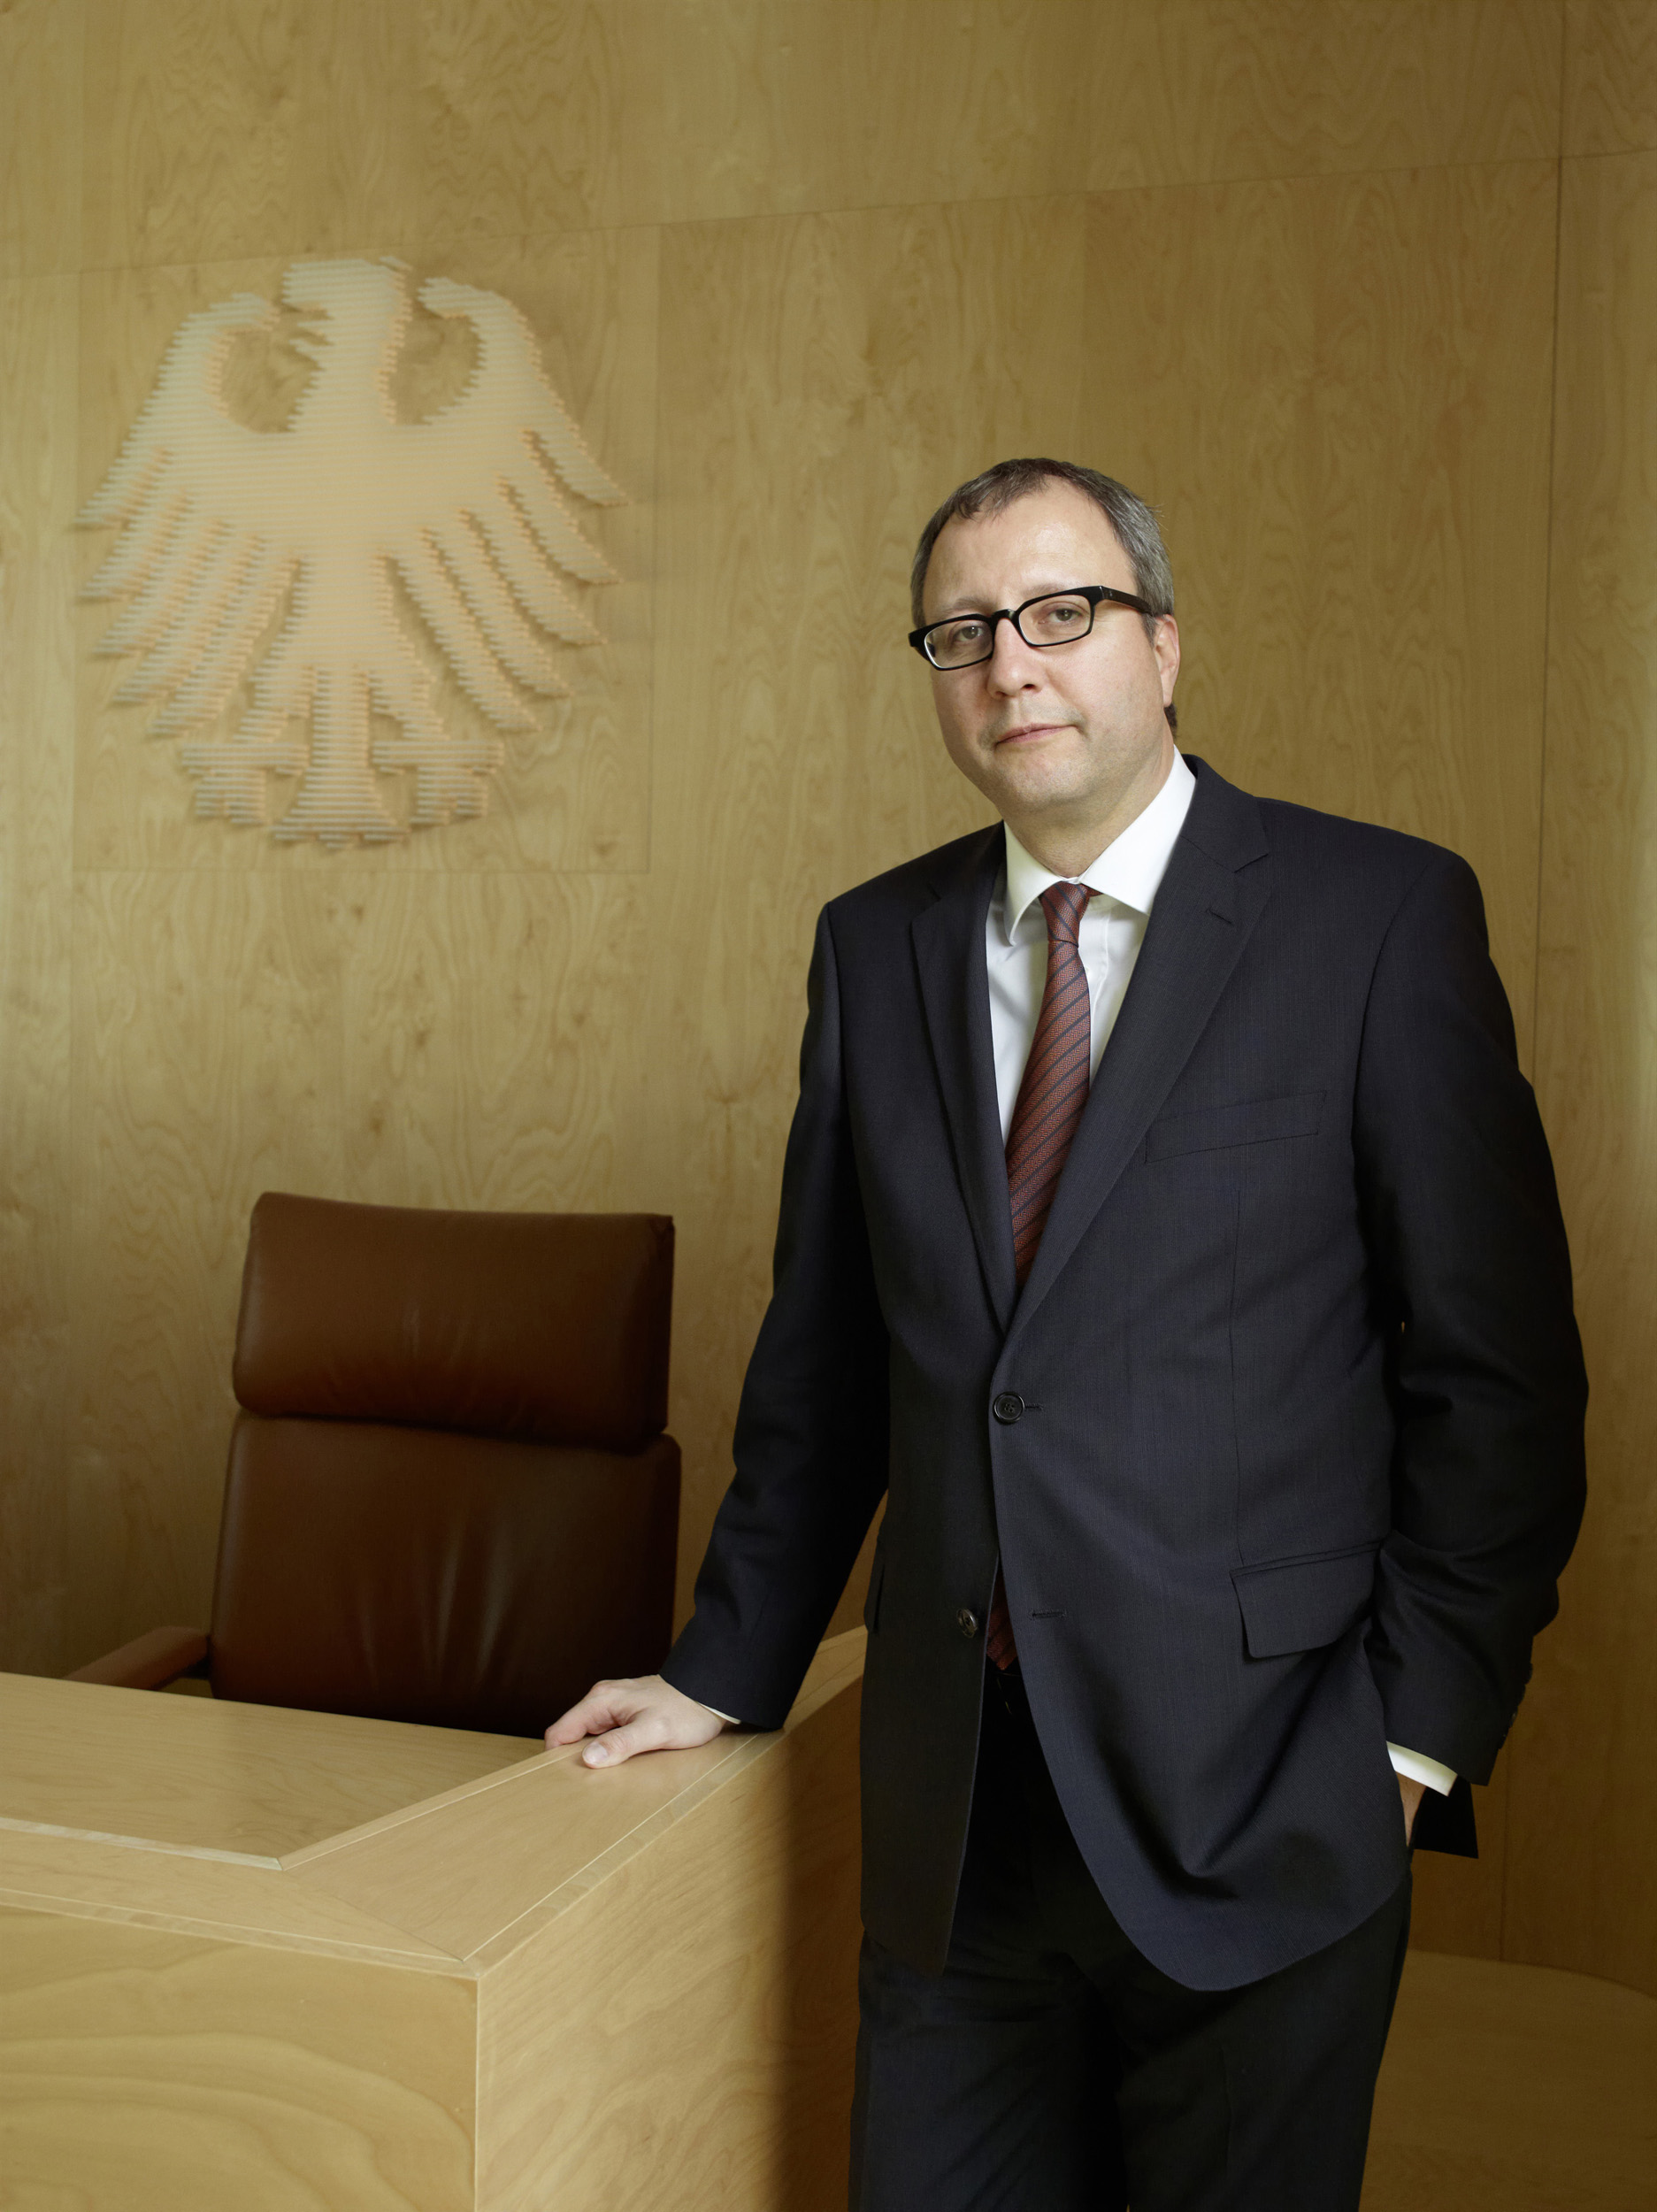 : Andreas Voßkuhle - president of the German Constitutional Court